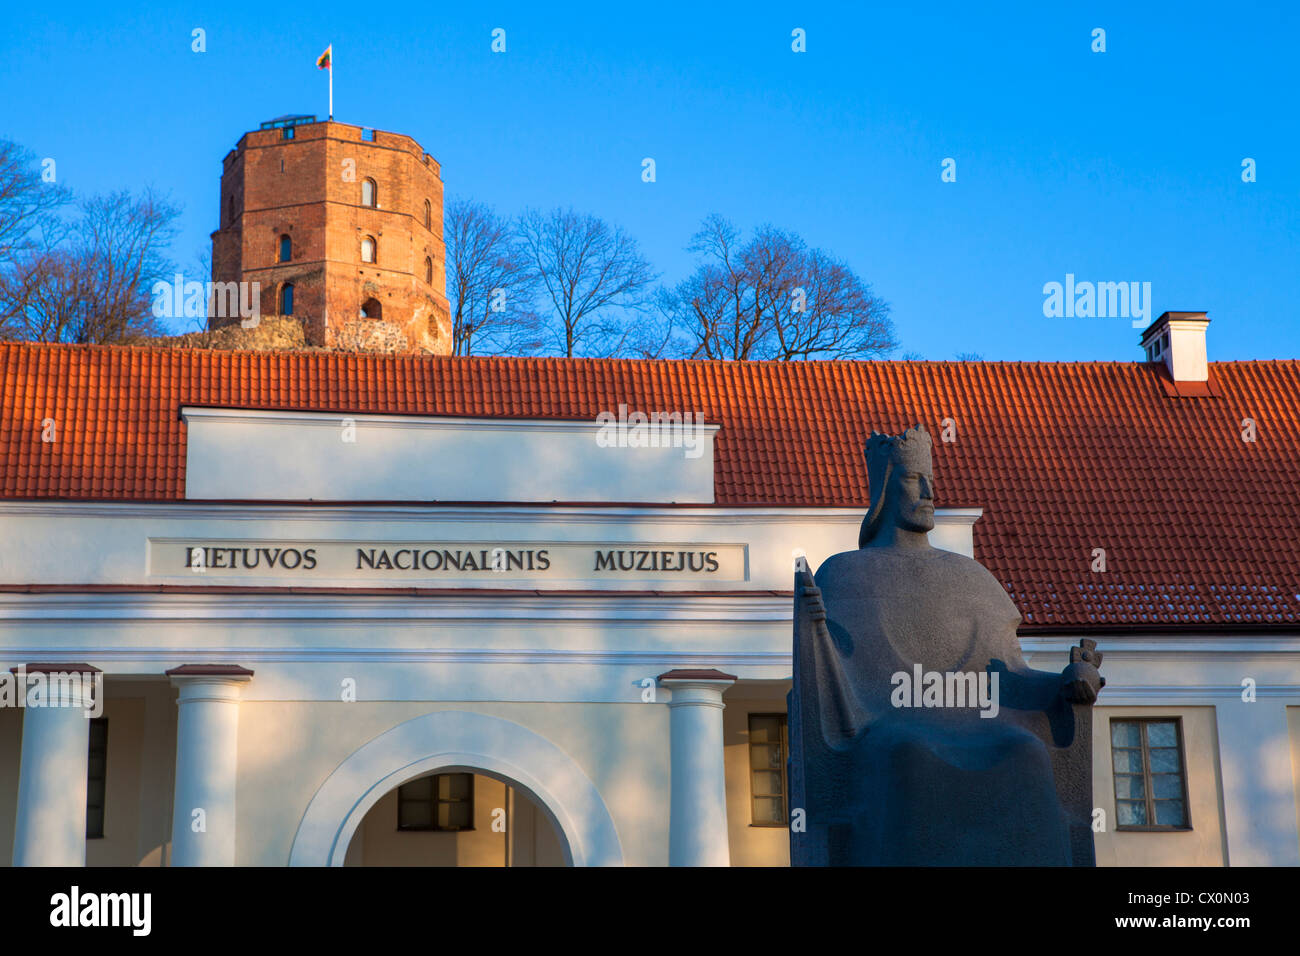 Architecture Vilnius Lithuania - Stock Image